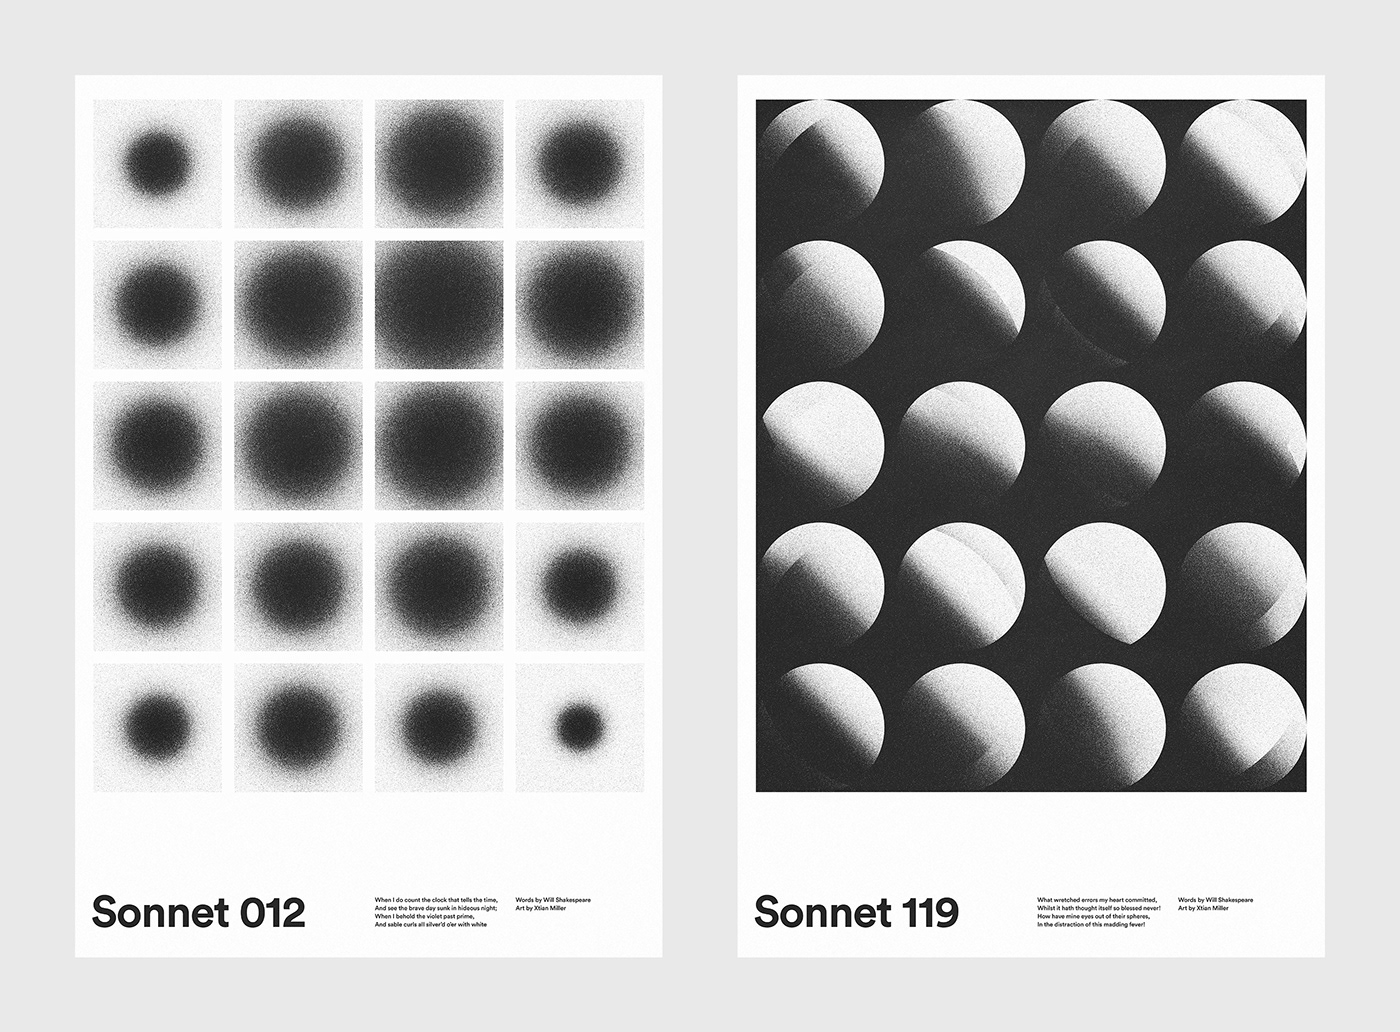 Sonnet 012 and 119